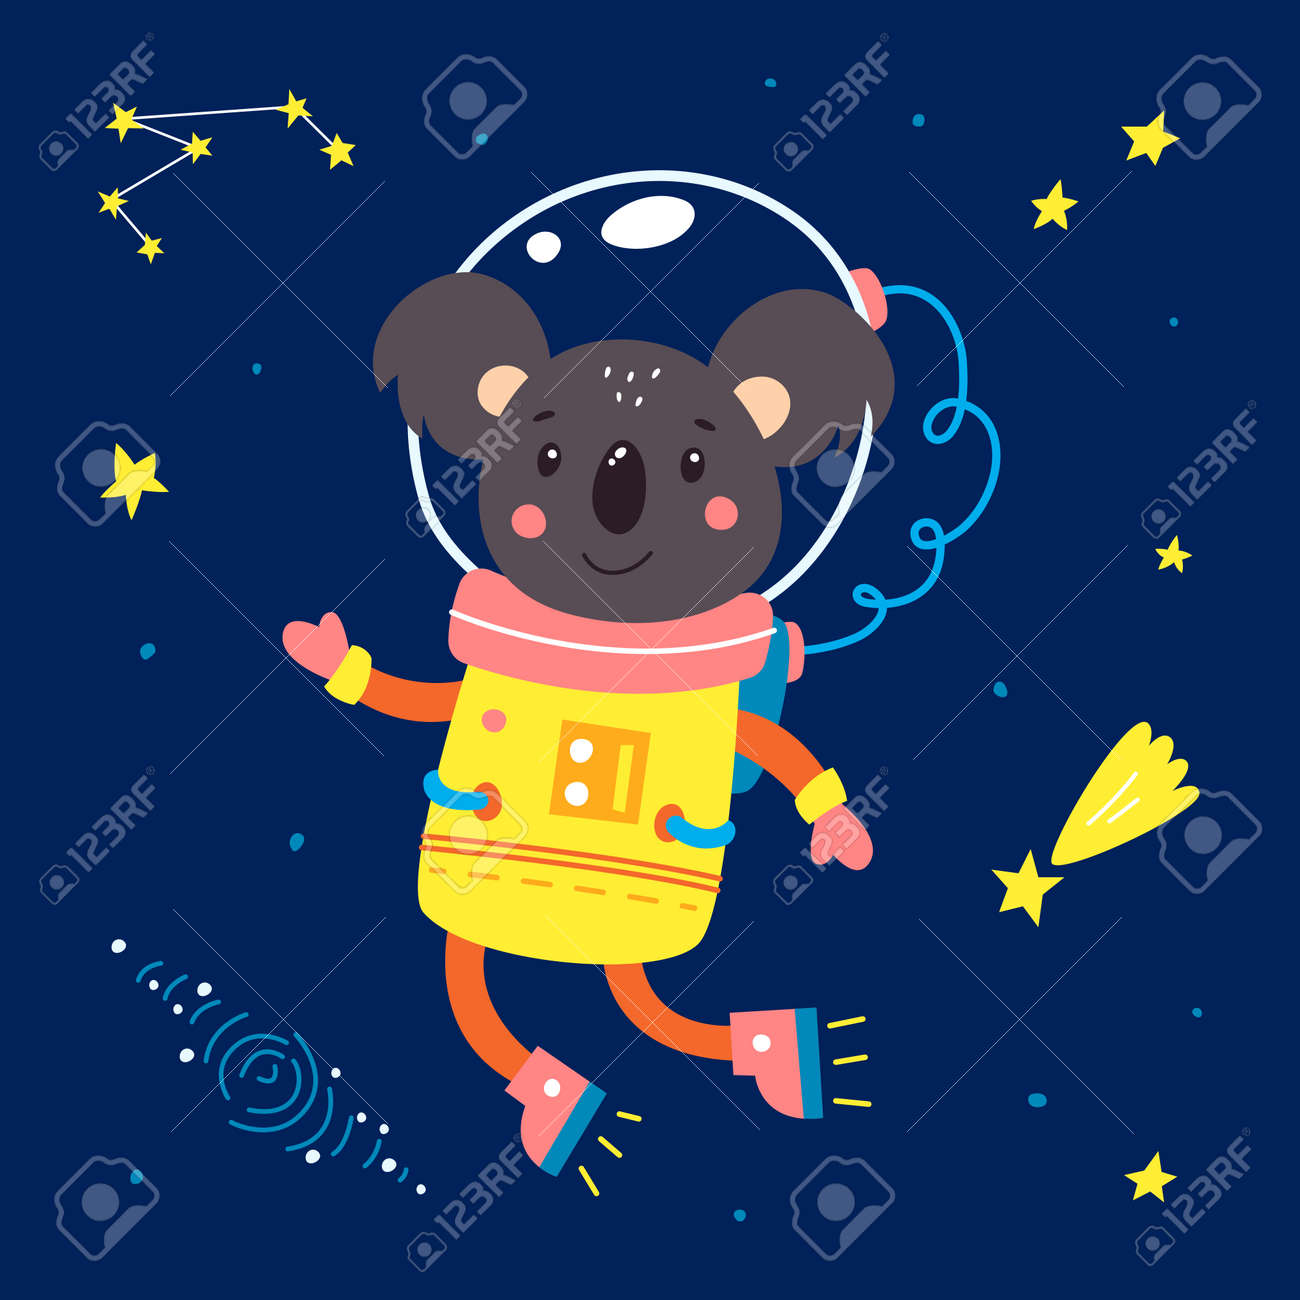 Animals in space. Vector illustration on a blue background. - 169771675